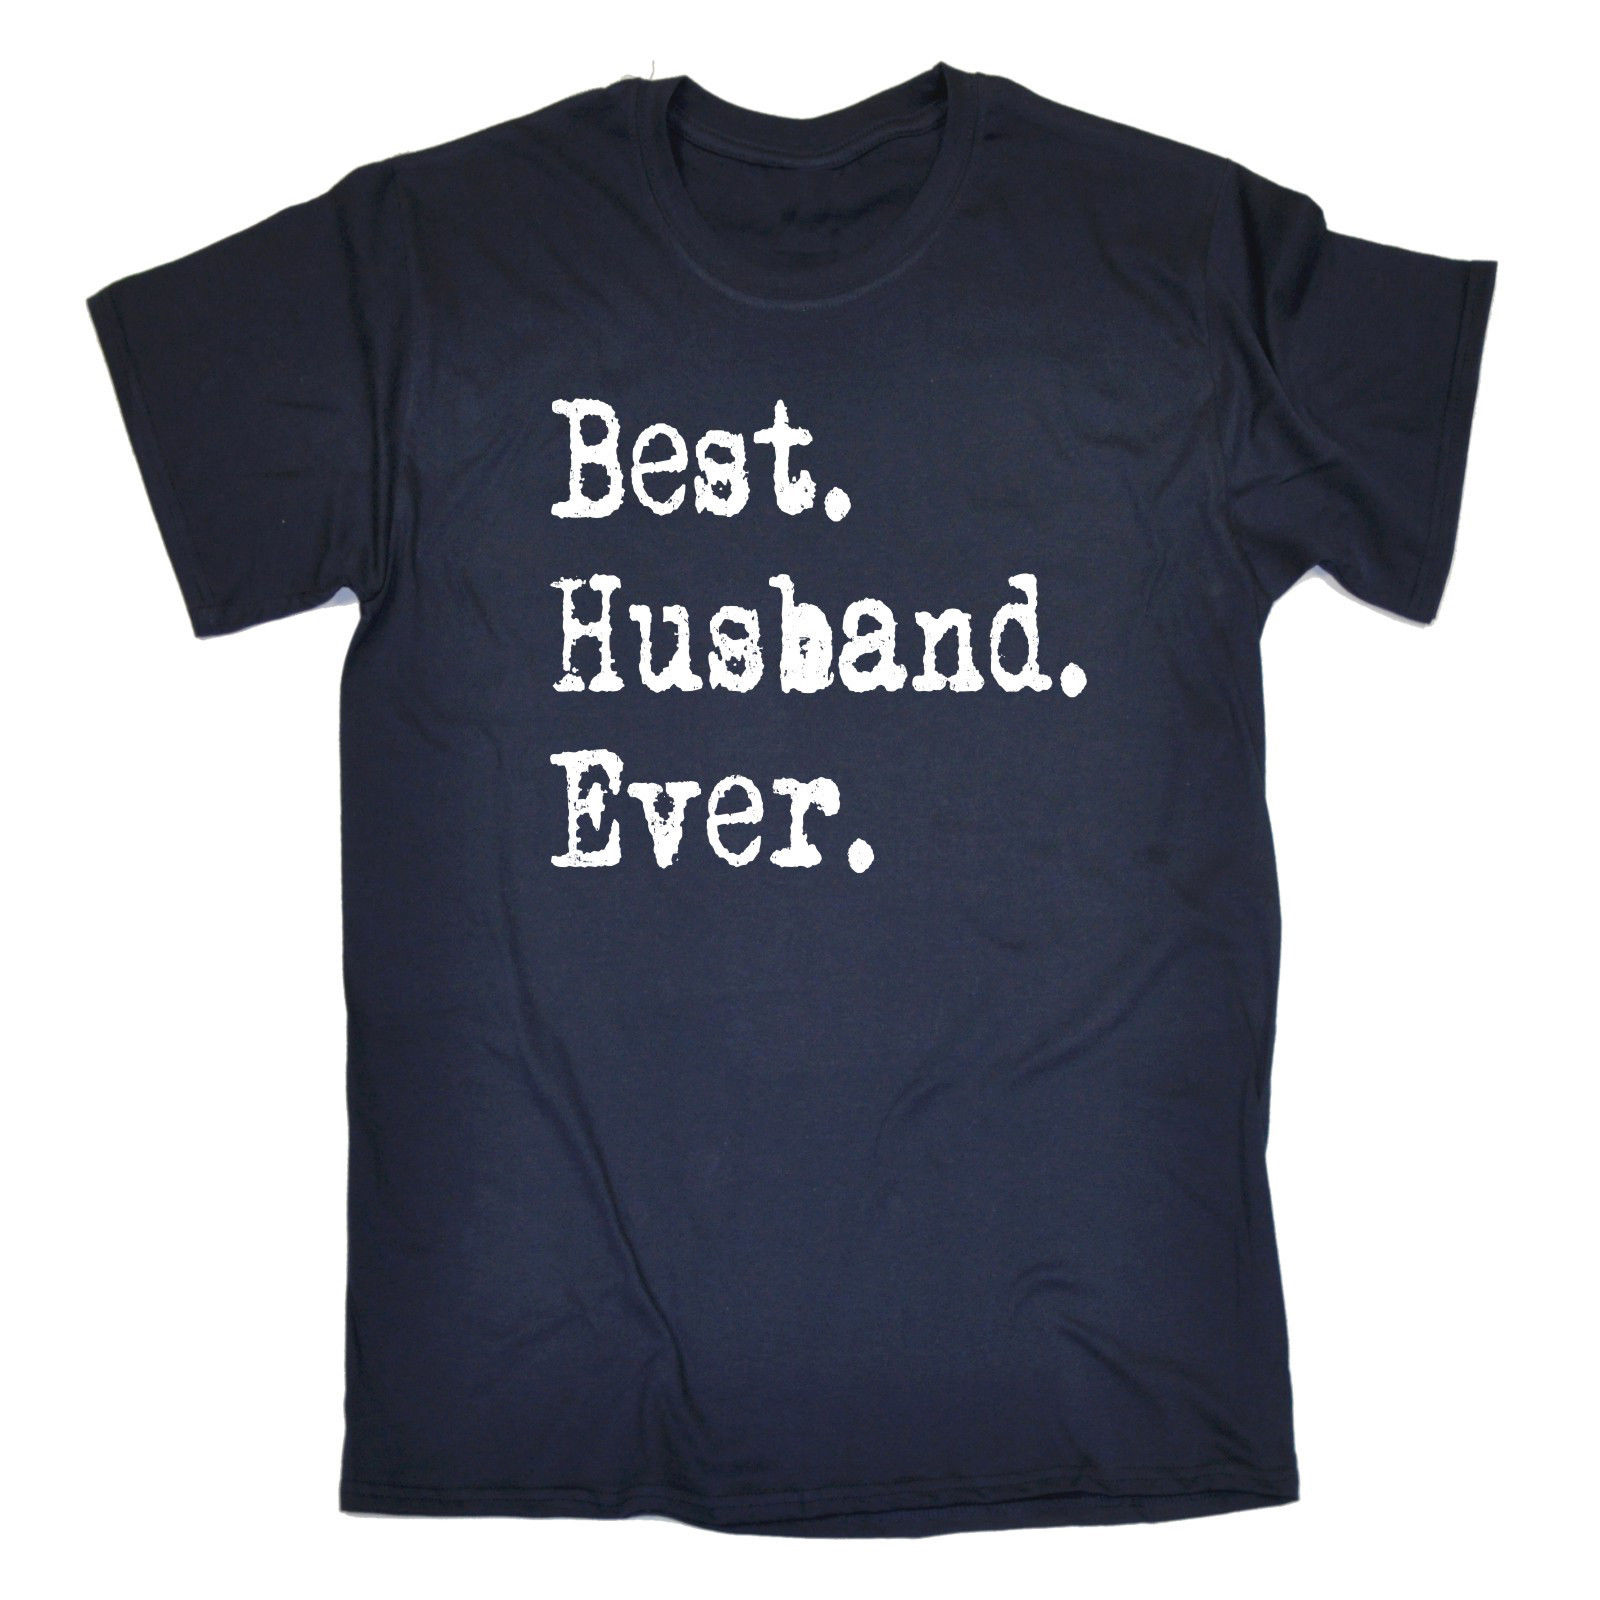 Best Husband Ever T Shirt Hubby Married Marriage Wedding Funny